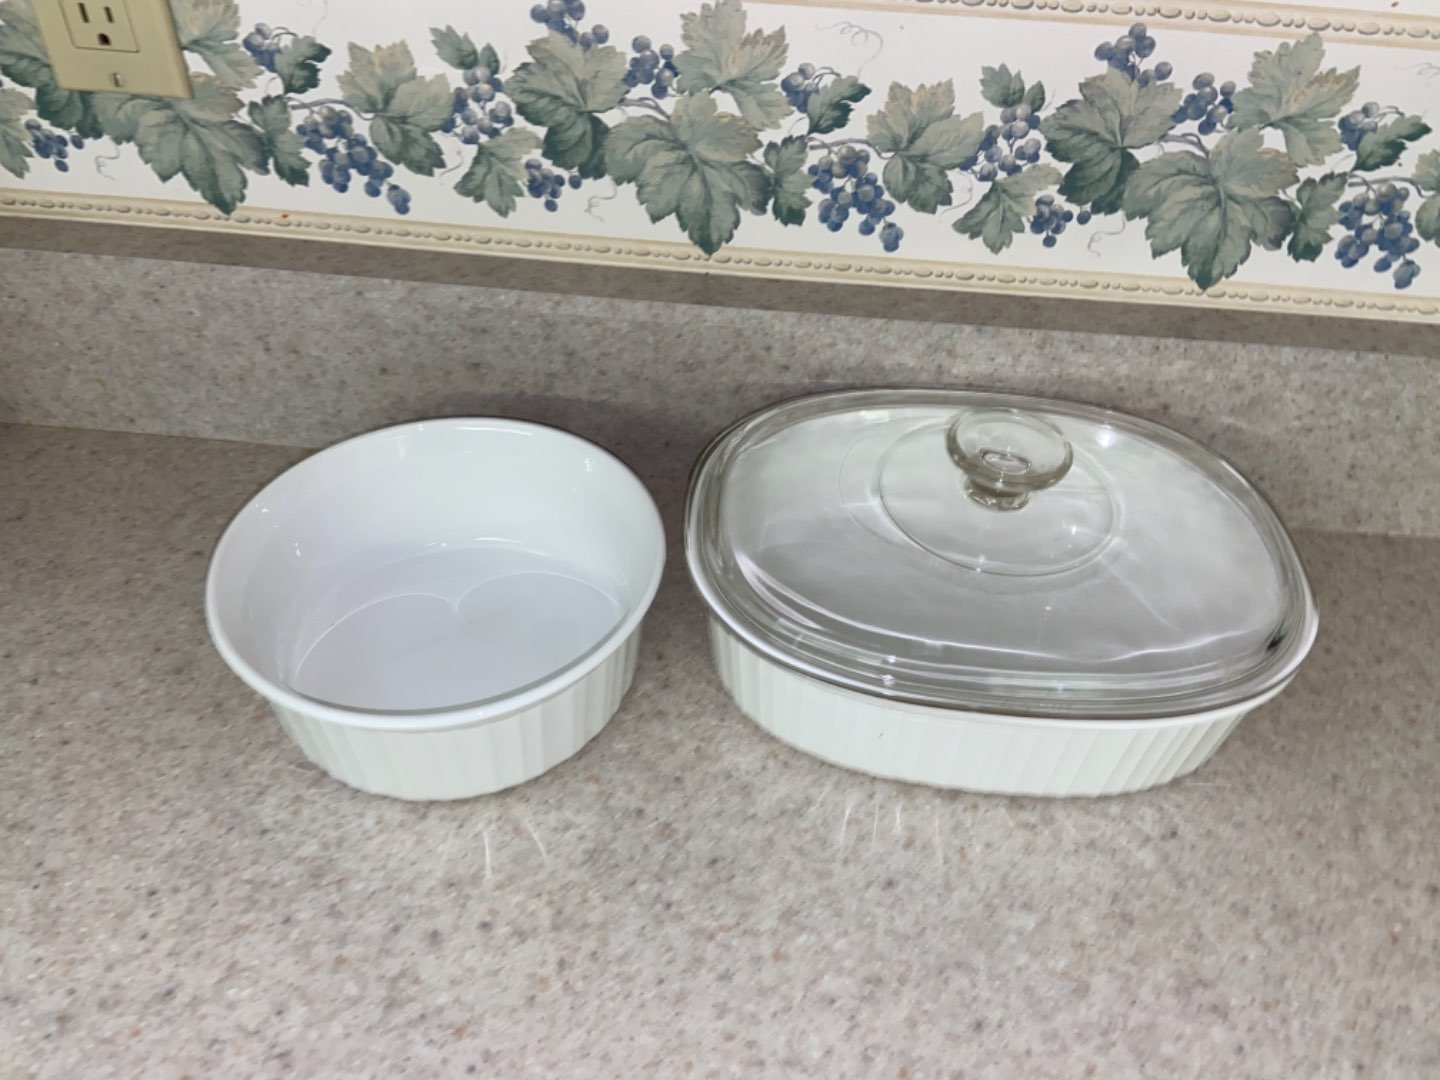 Lot # 124 Corning Ware Dishes